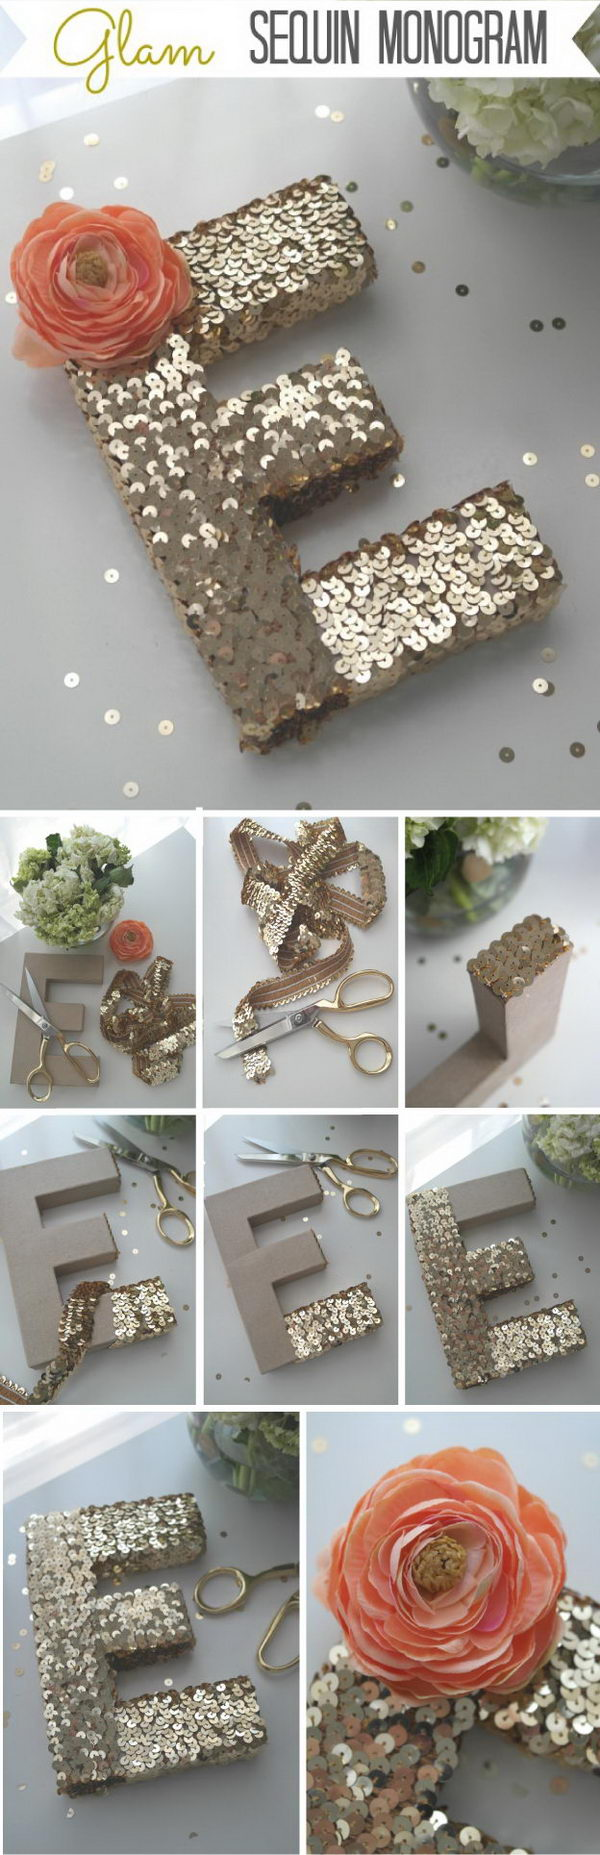 DIY Sequin Monogram Letter